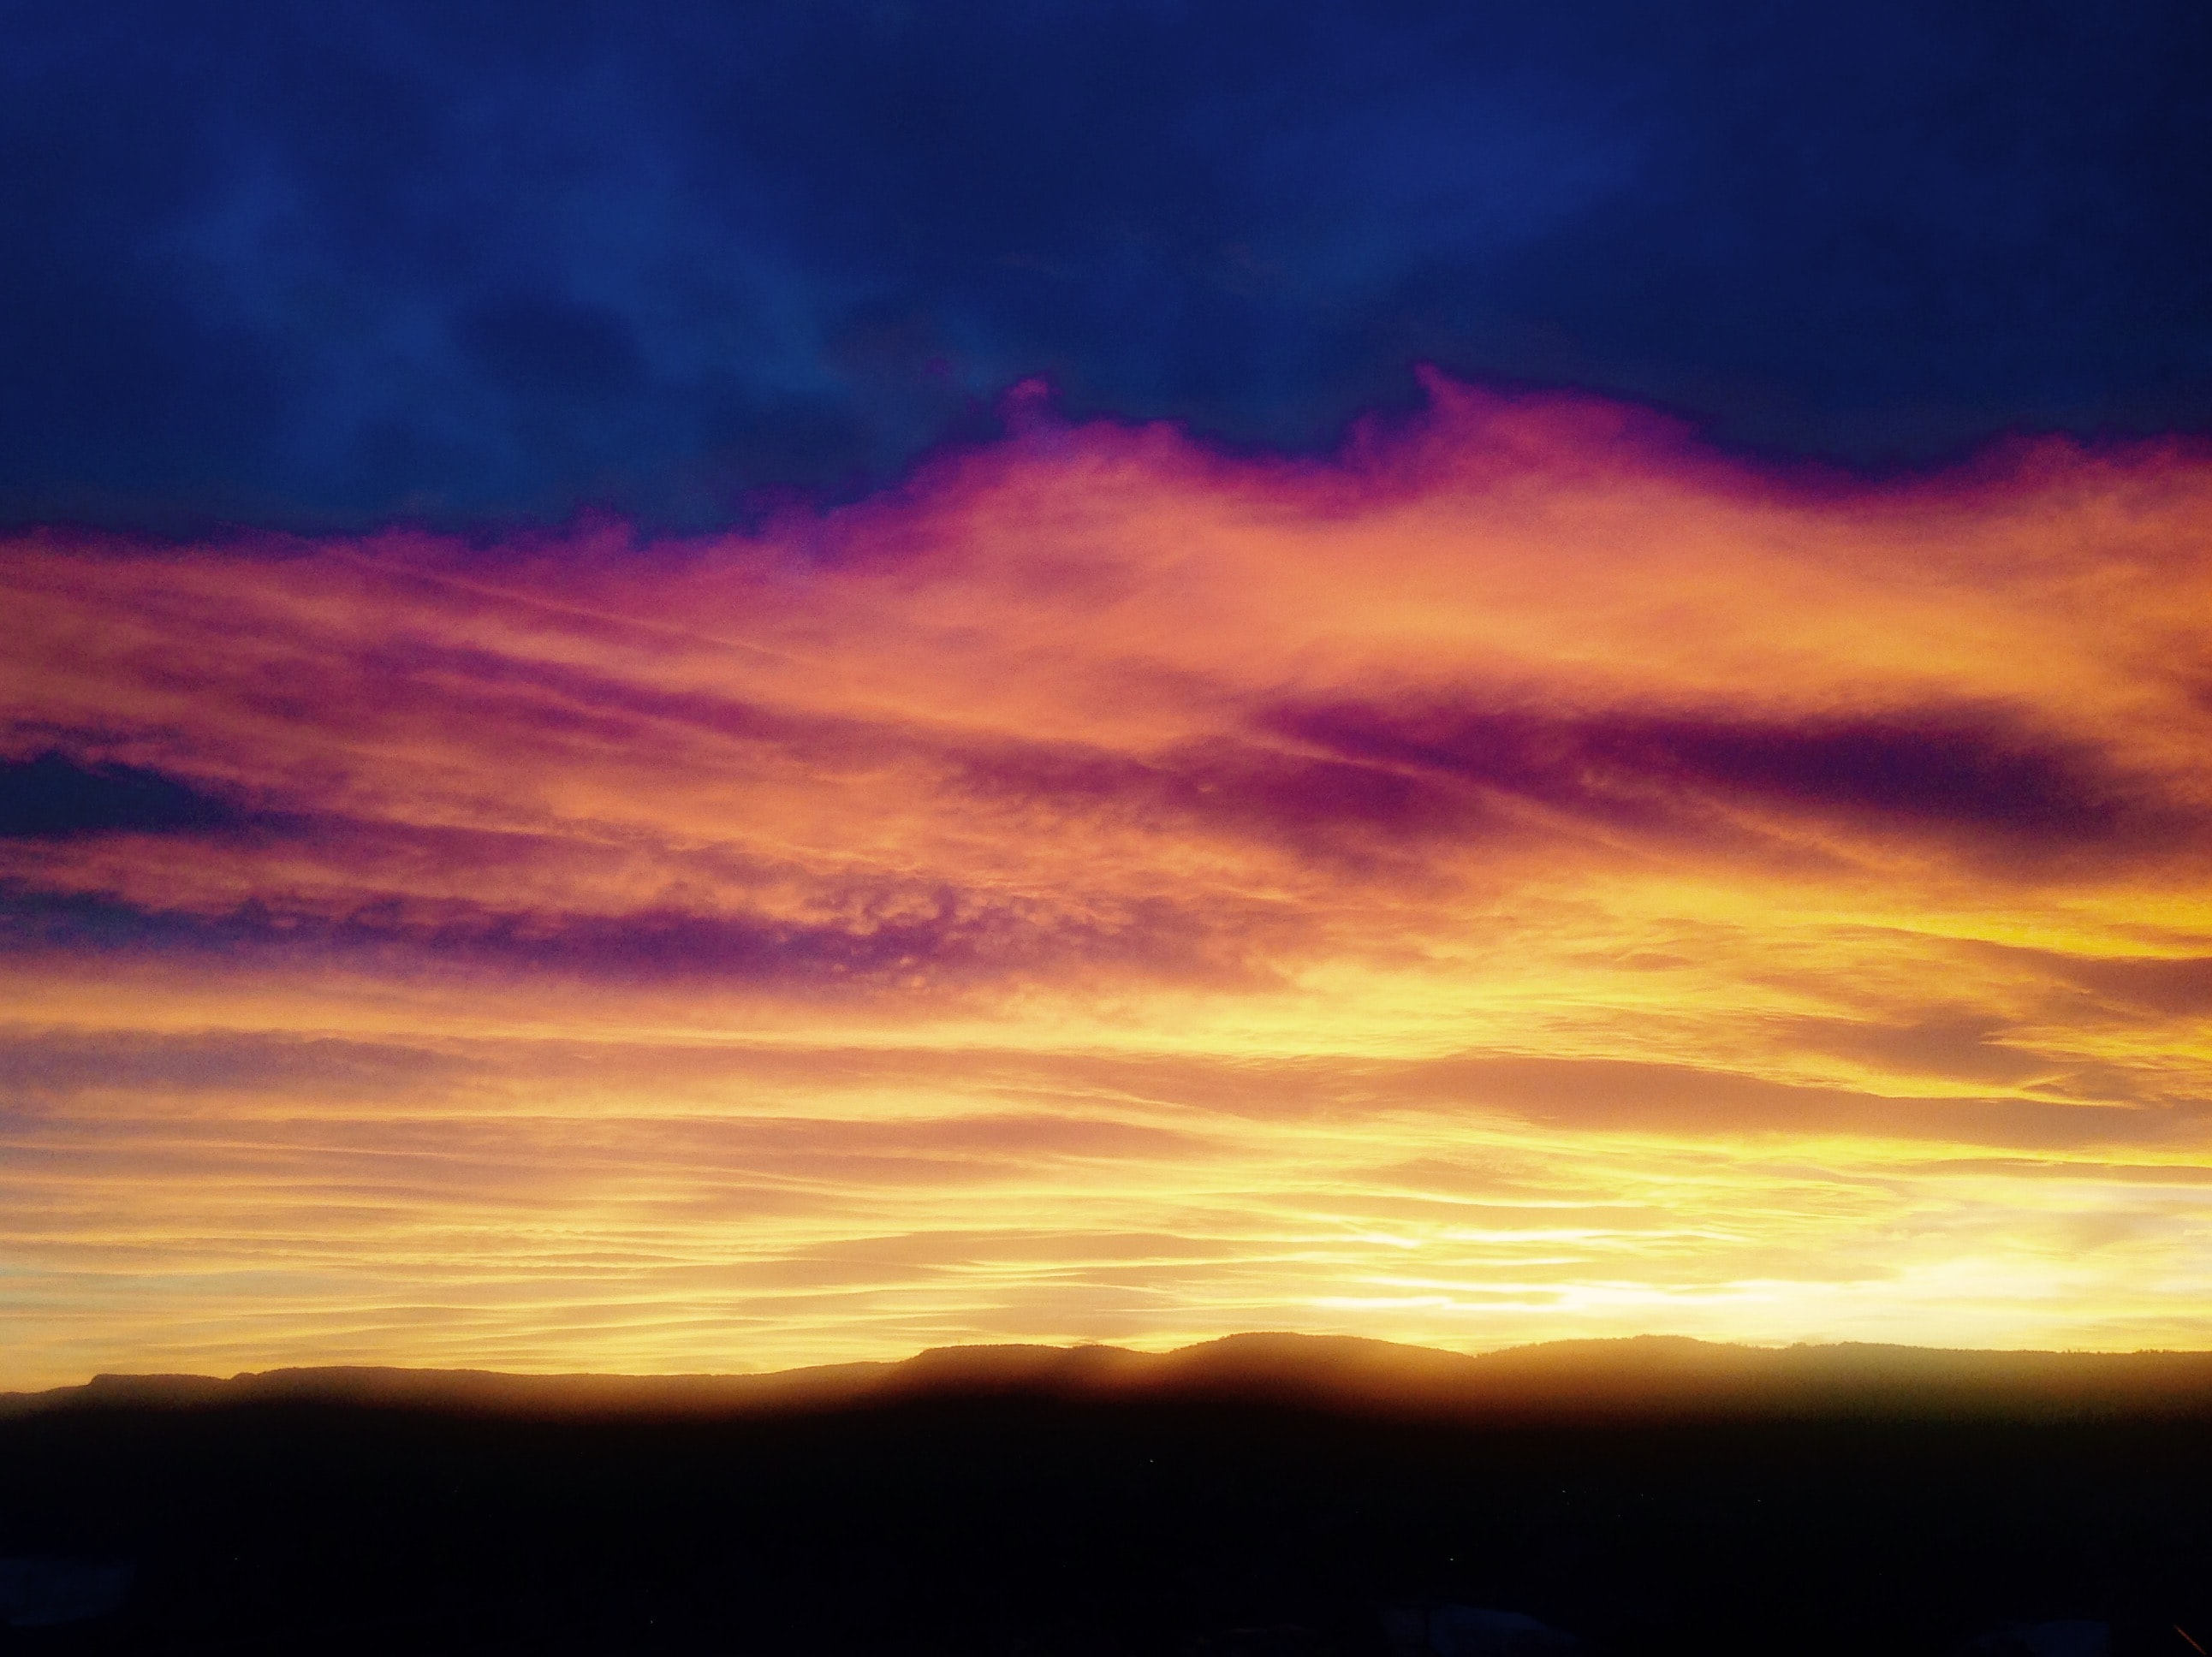 A dramatic sunrise or sunset with pink, blue, and orange tones in the clouds in Oslo